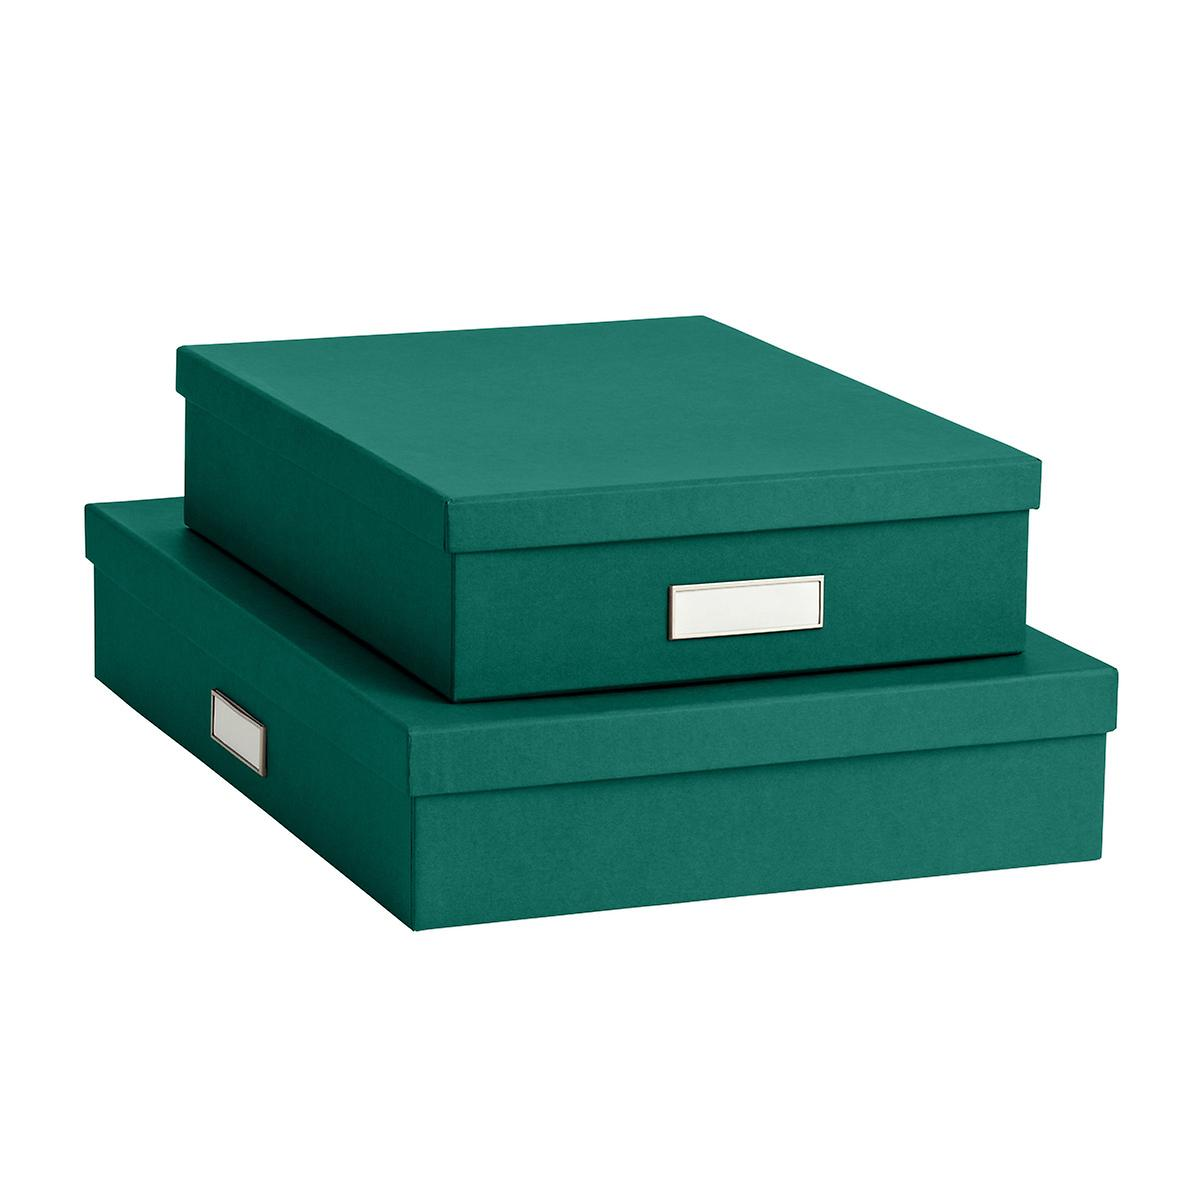 Bigso Emerald Green Stockholm Office Storage Boxes